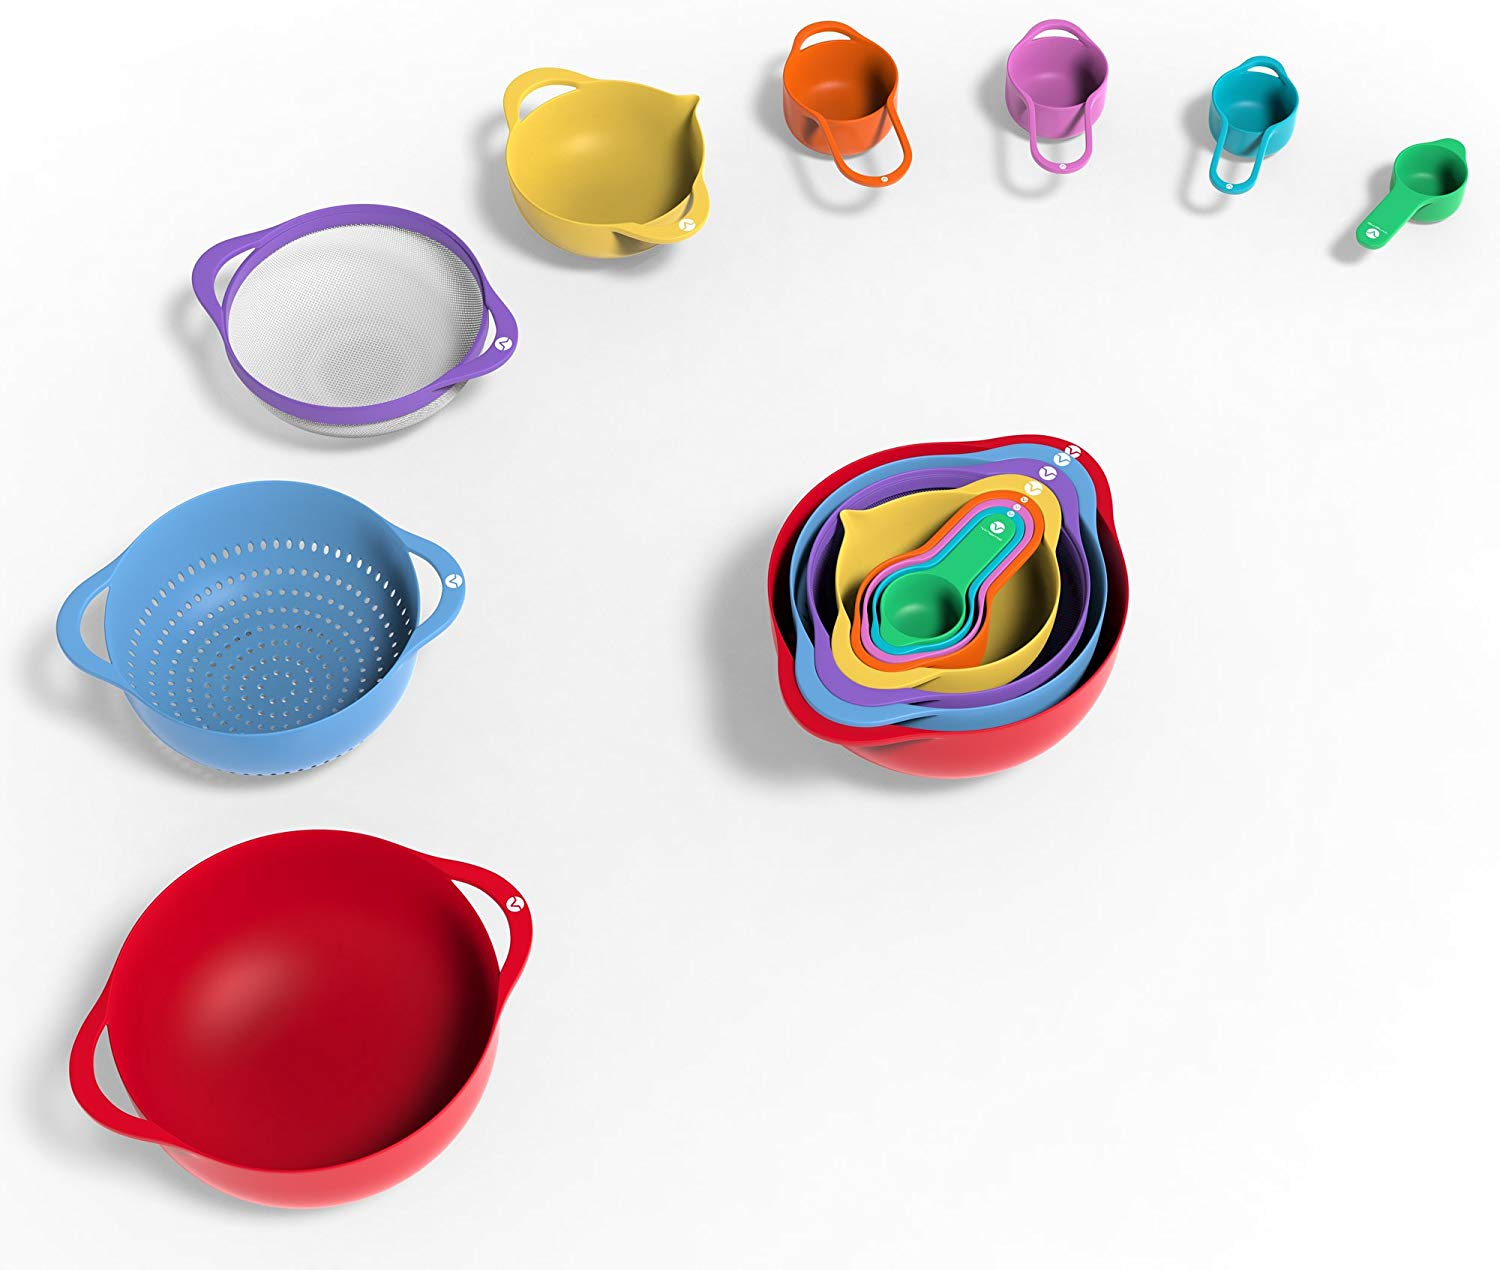 13 Piece Mixing Bowl Set - Colorful Kitchen Bowls